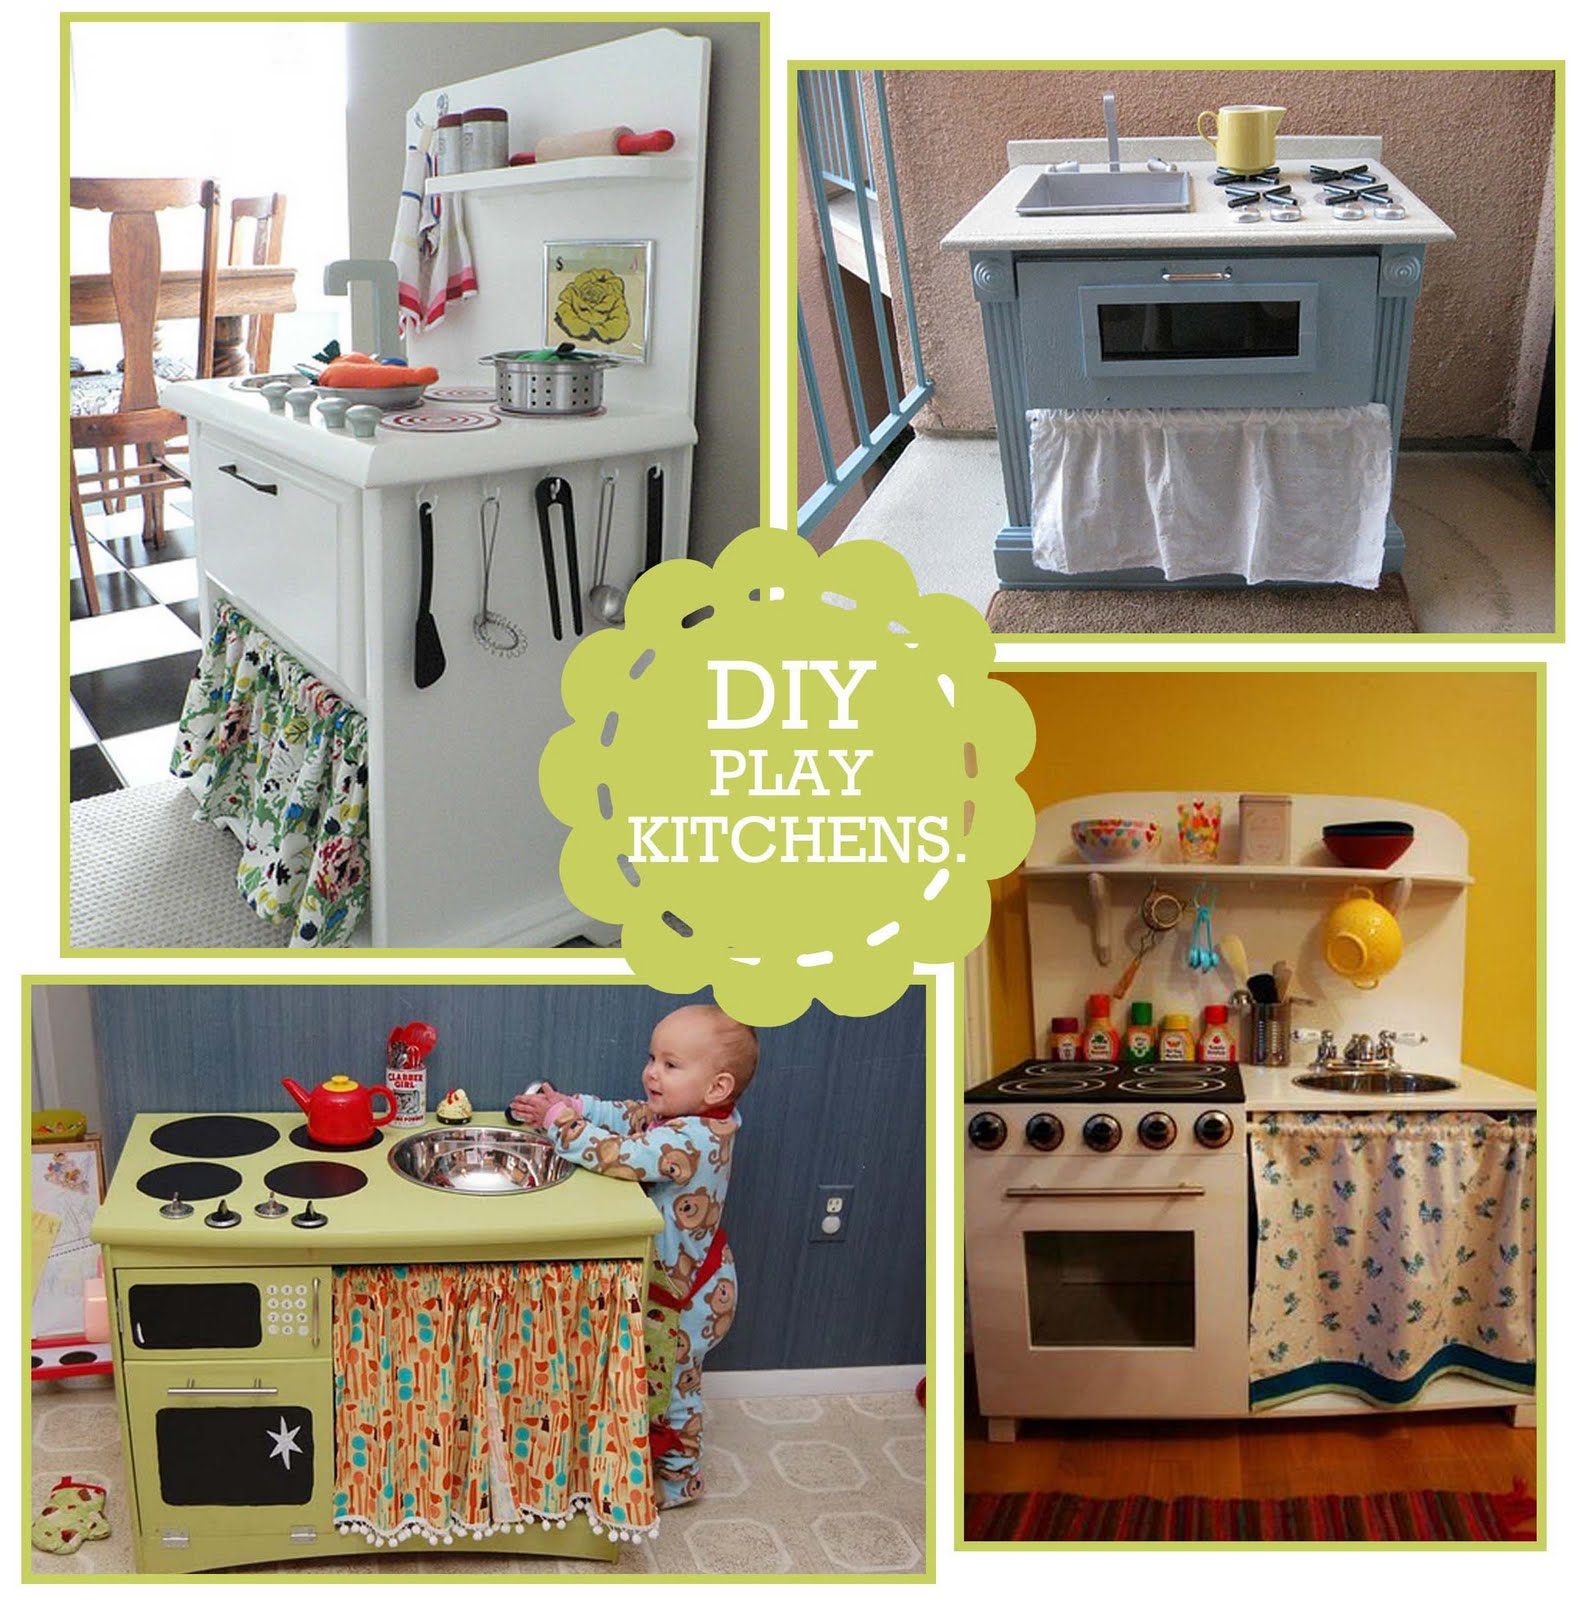 Diy Kitchen Play Set Photo Inspiration Links Giveaway Winner At Home With Natalie